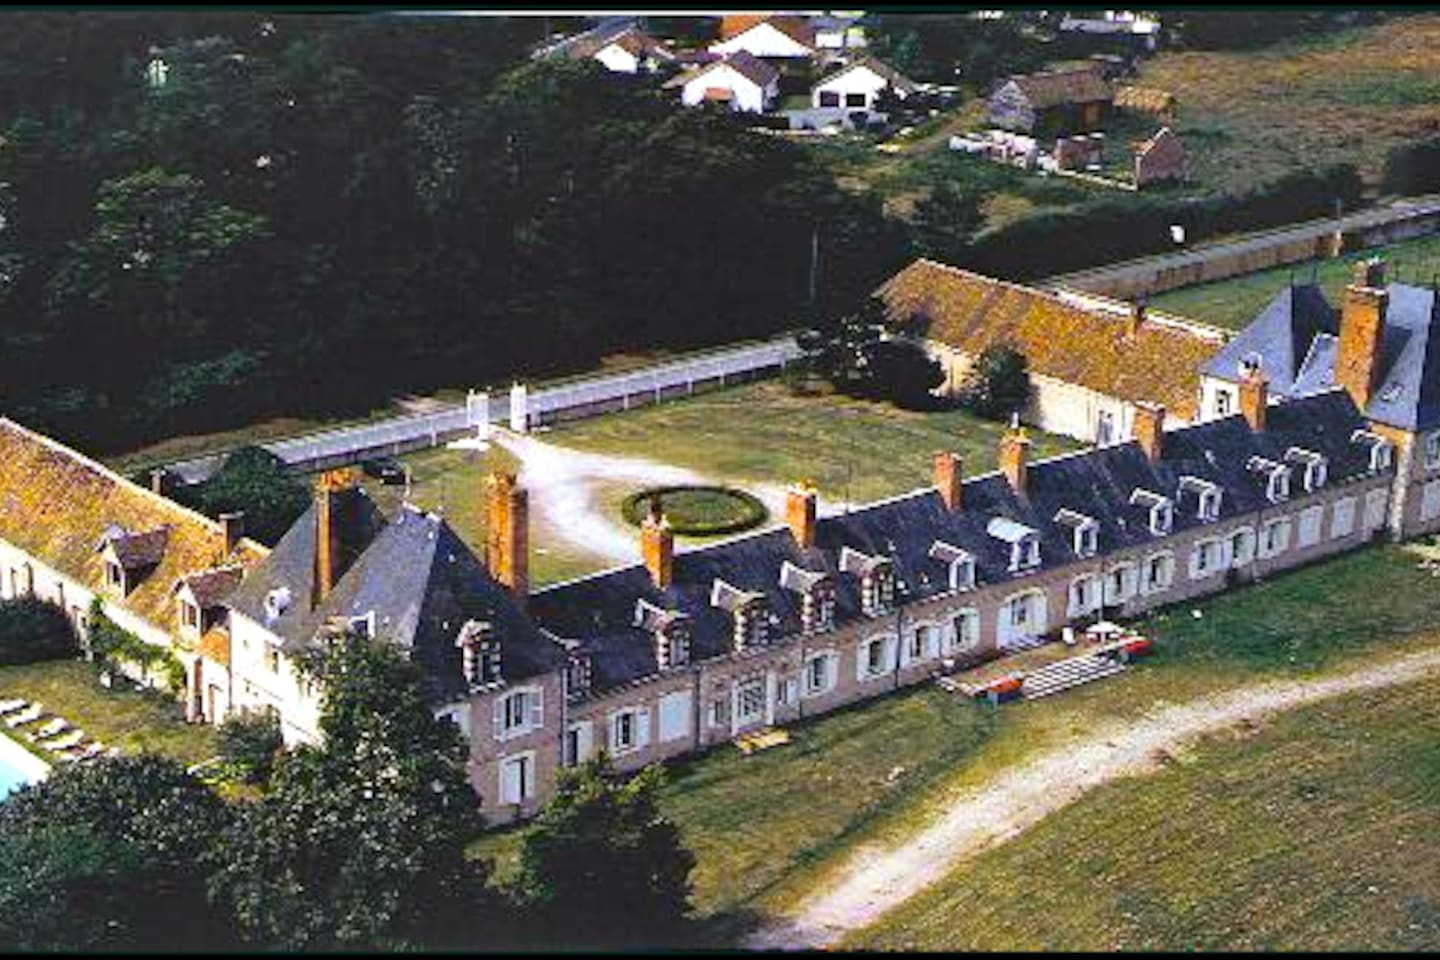 The Faba's castle of Sologne